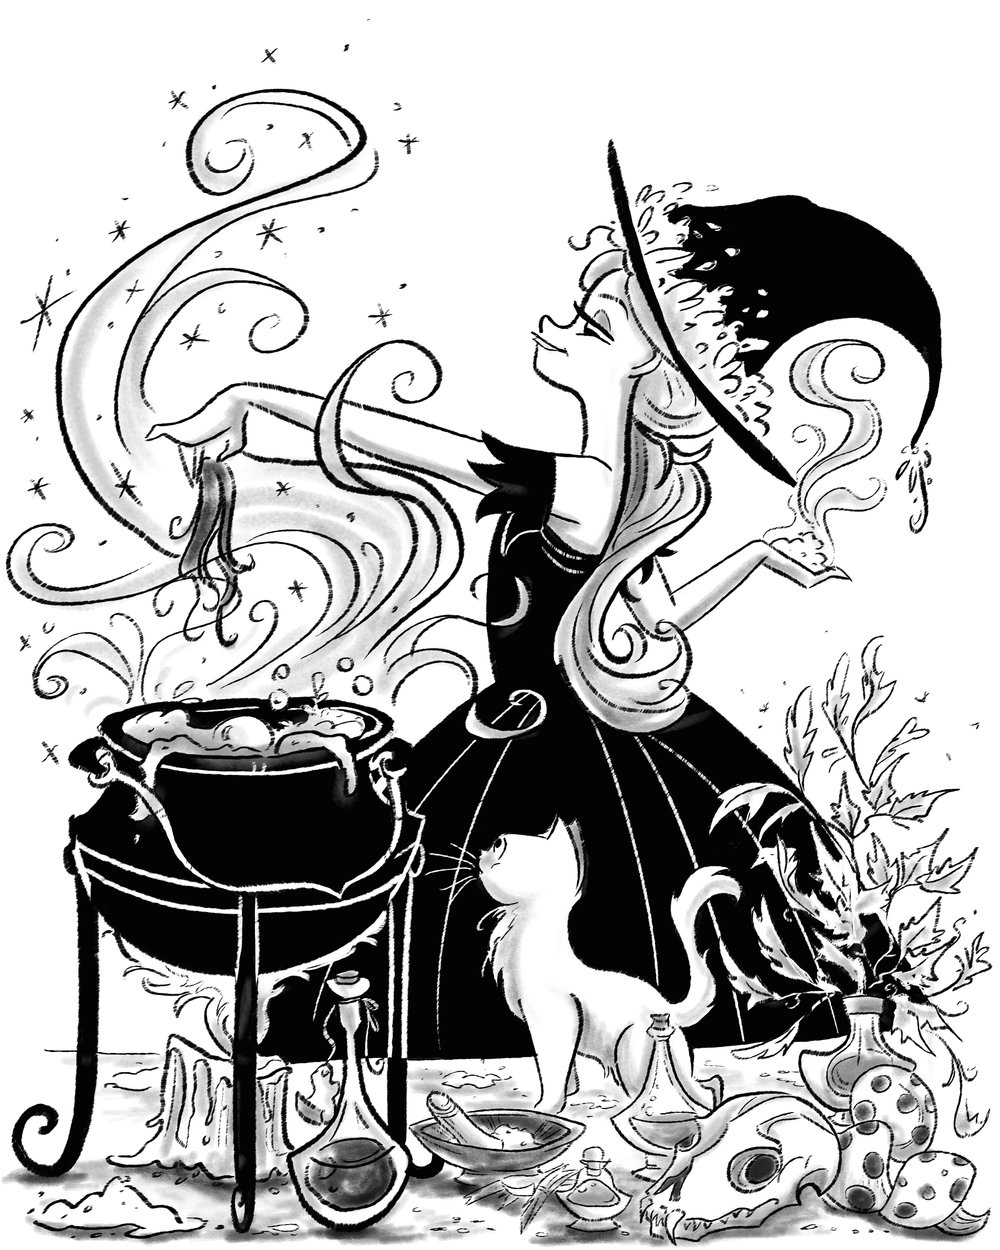 Been keeping with the October theme, I been doodling a witch and her kitty and their daily day doings.